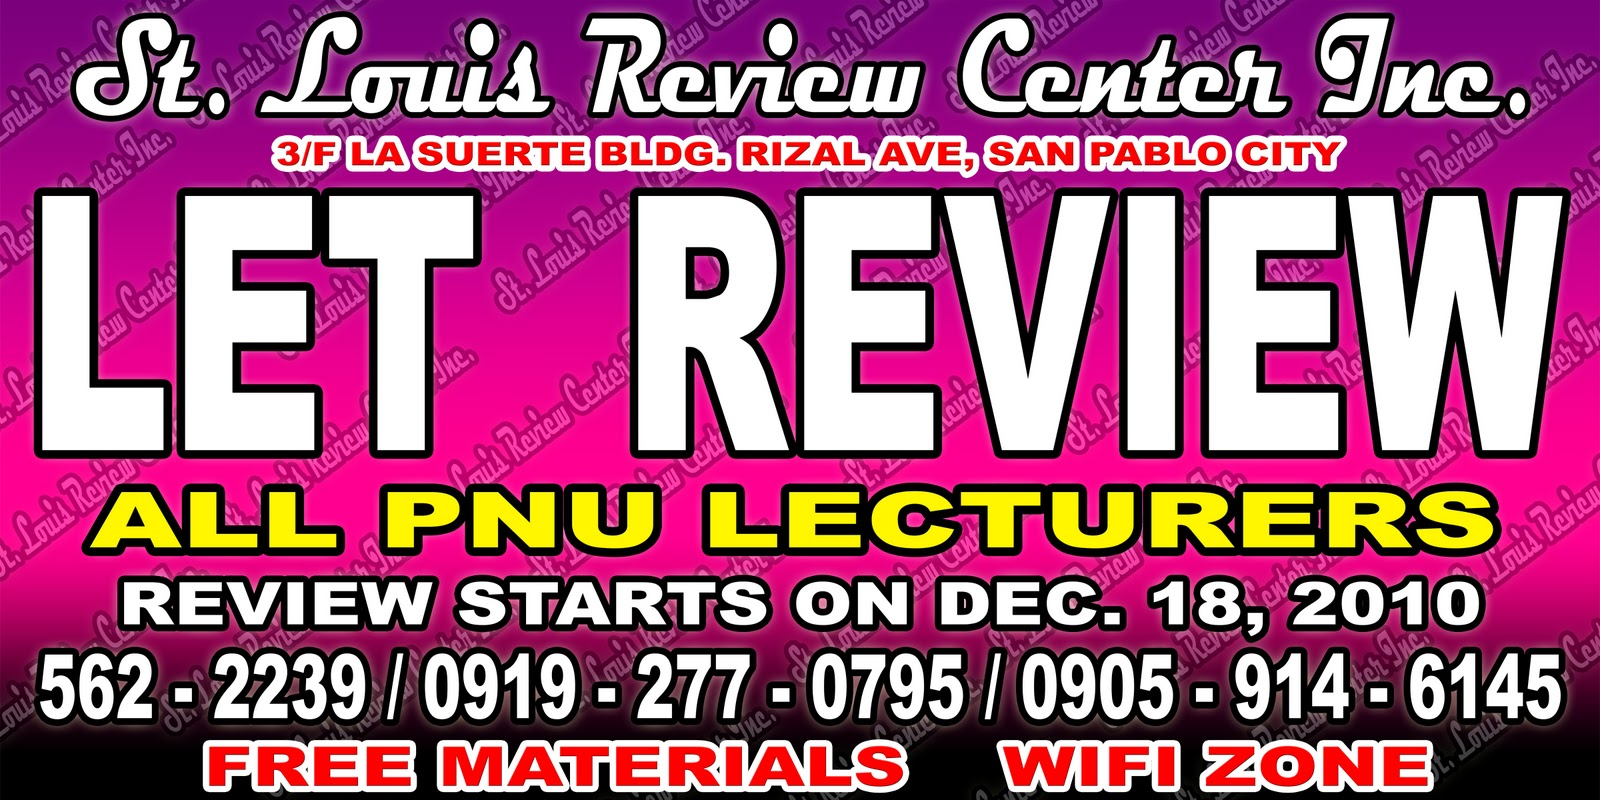 Louis Review Center Inc